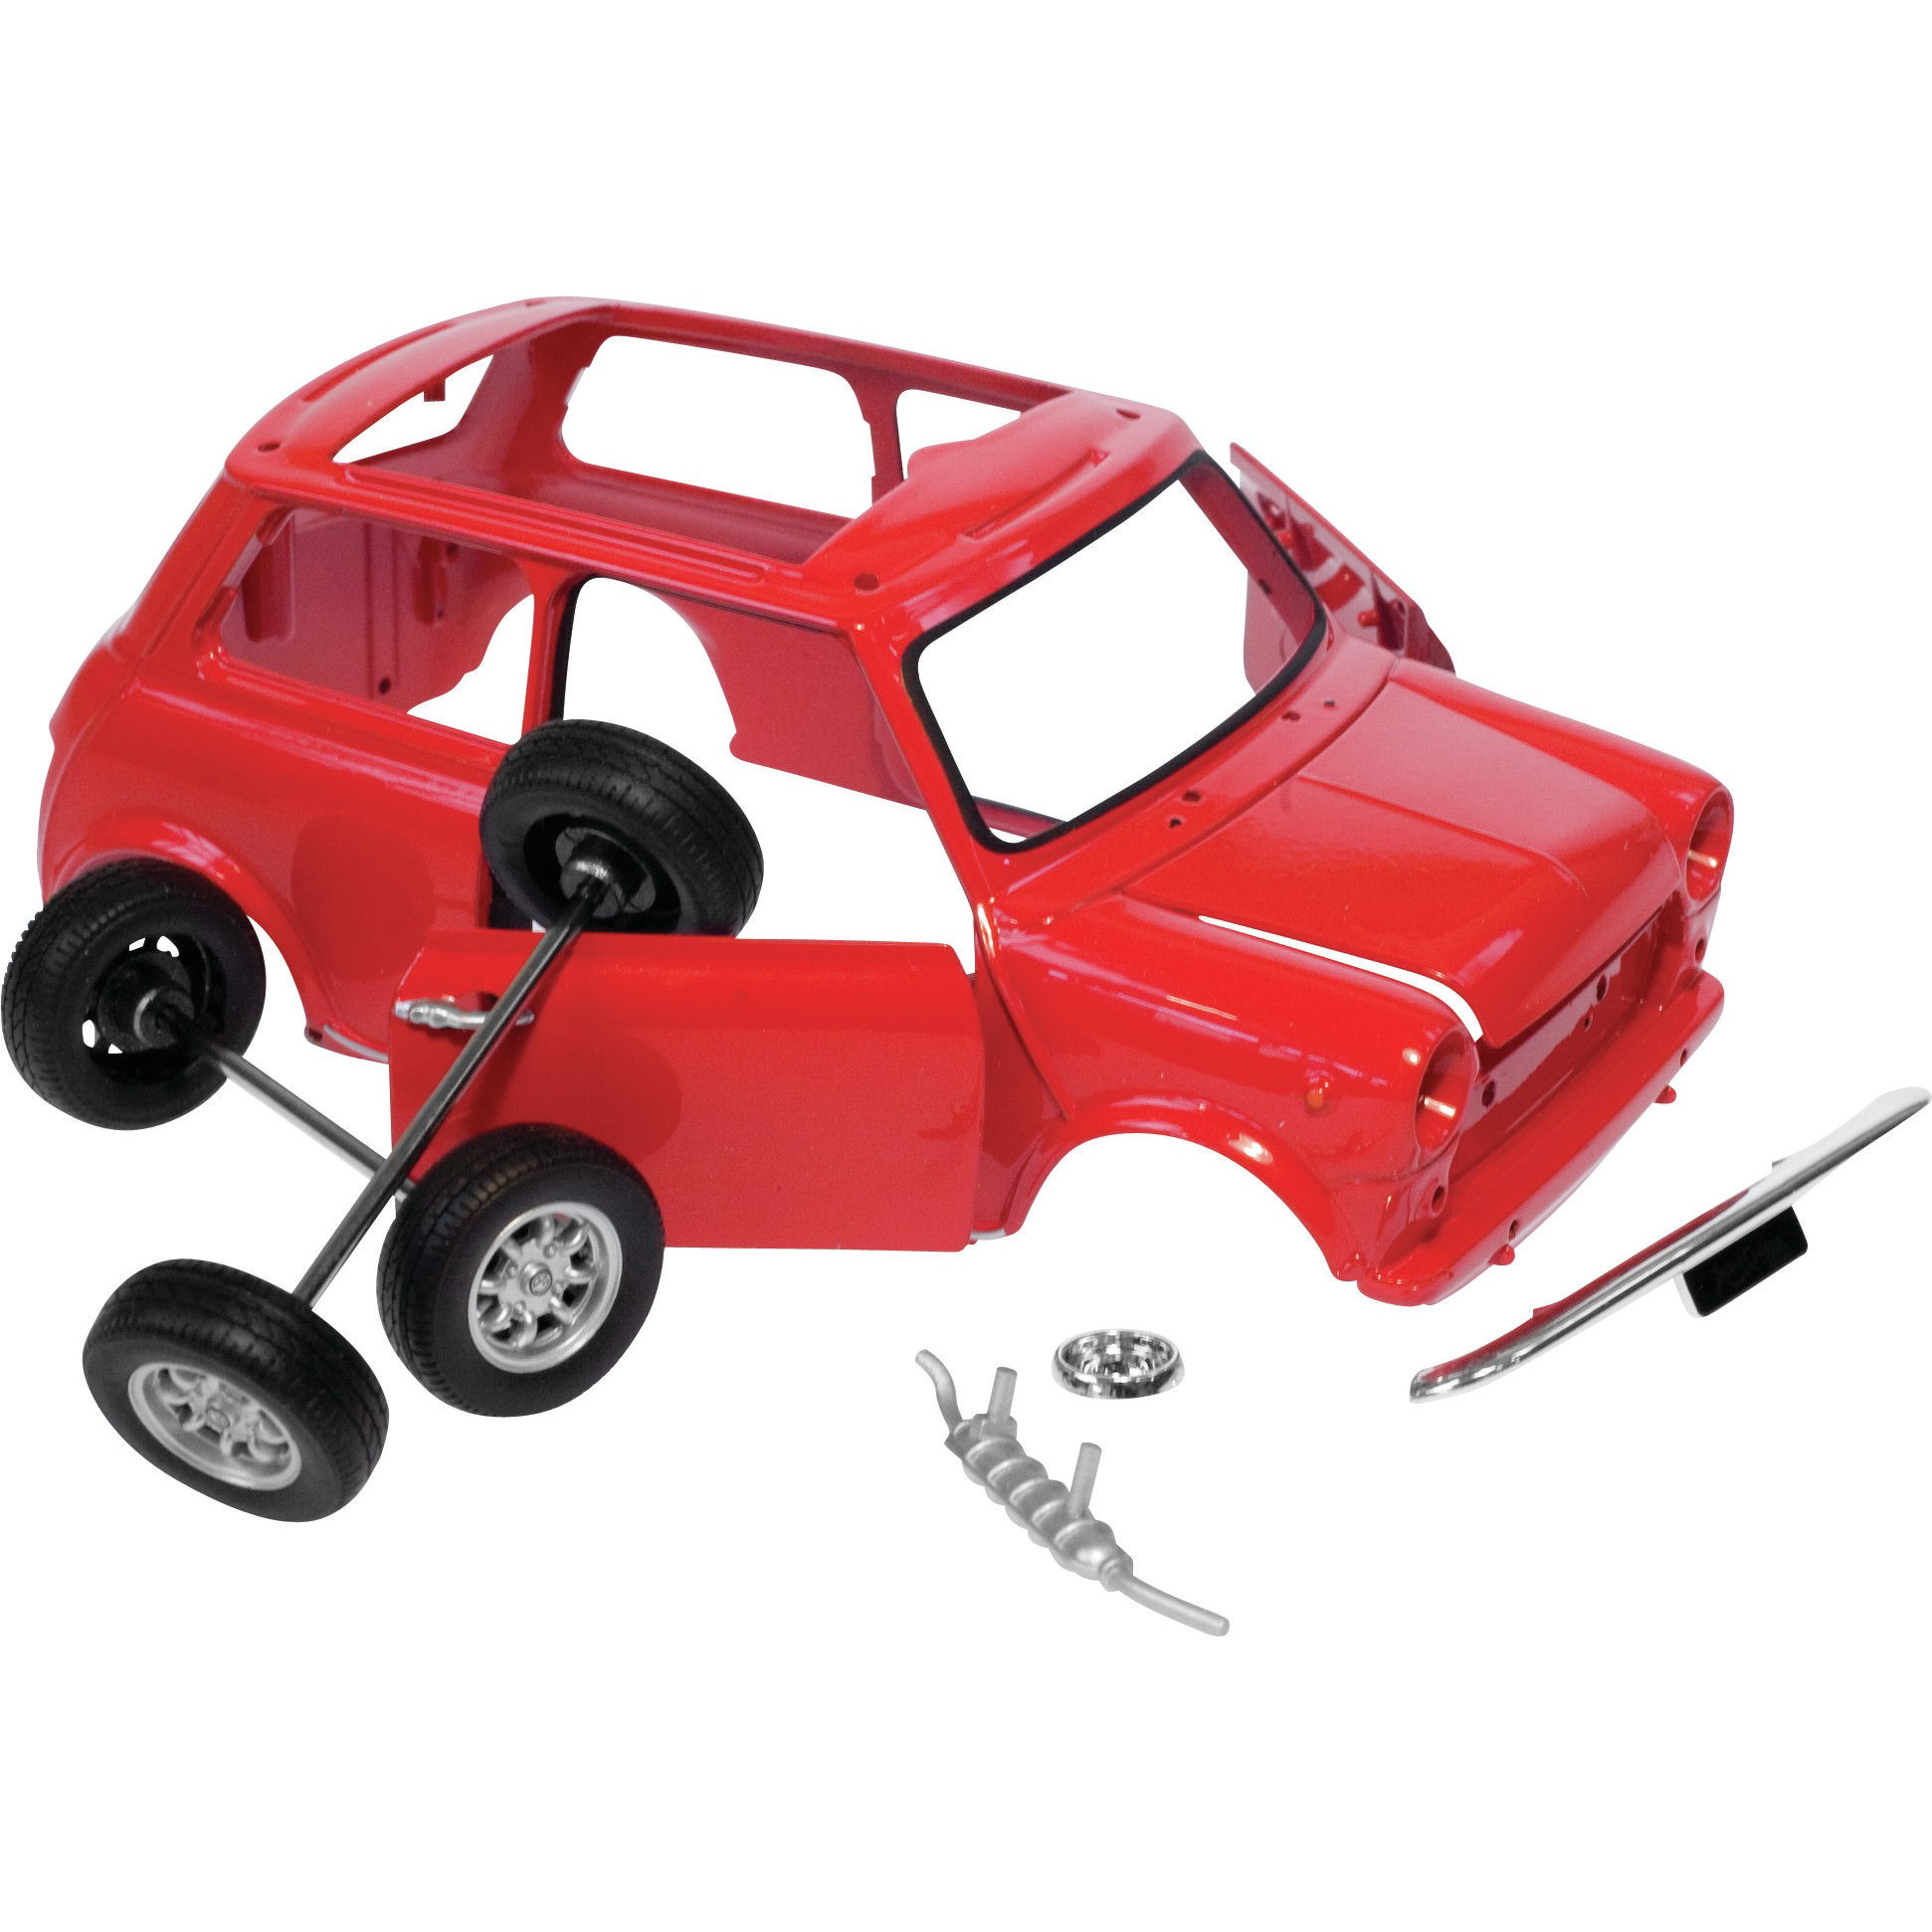 NEW HAYNES MINI BUILD YOUR OWN RETRO CAR MODEL 1 24 KIT